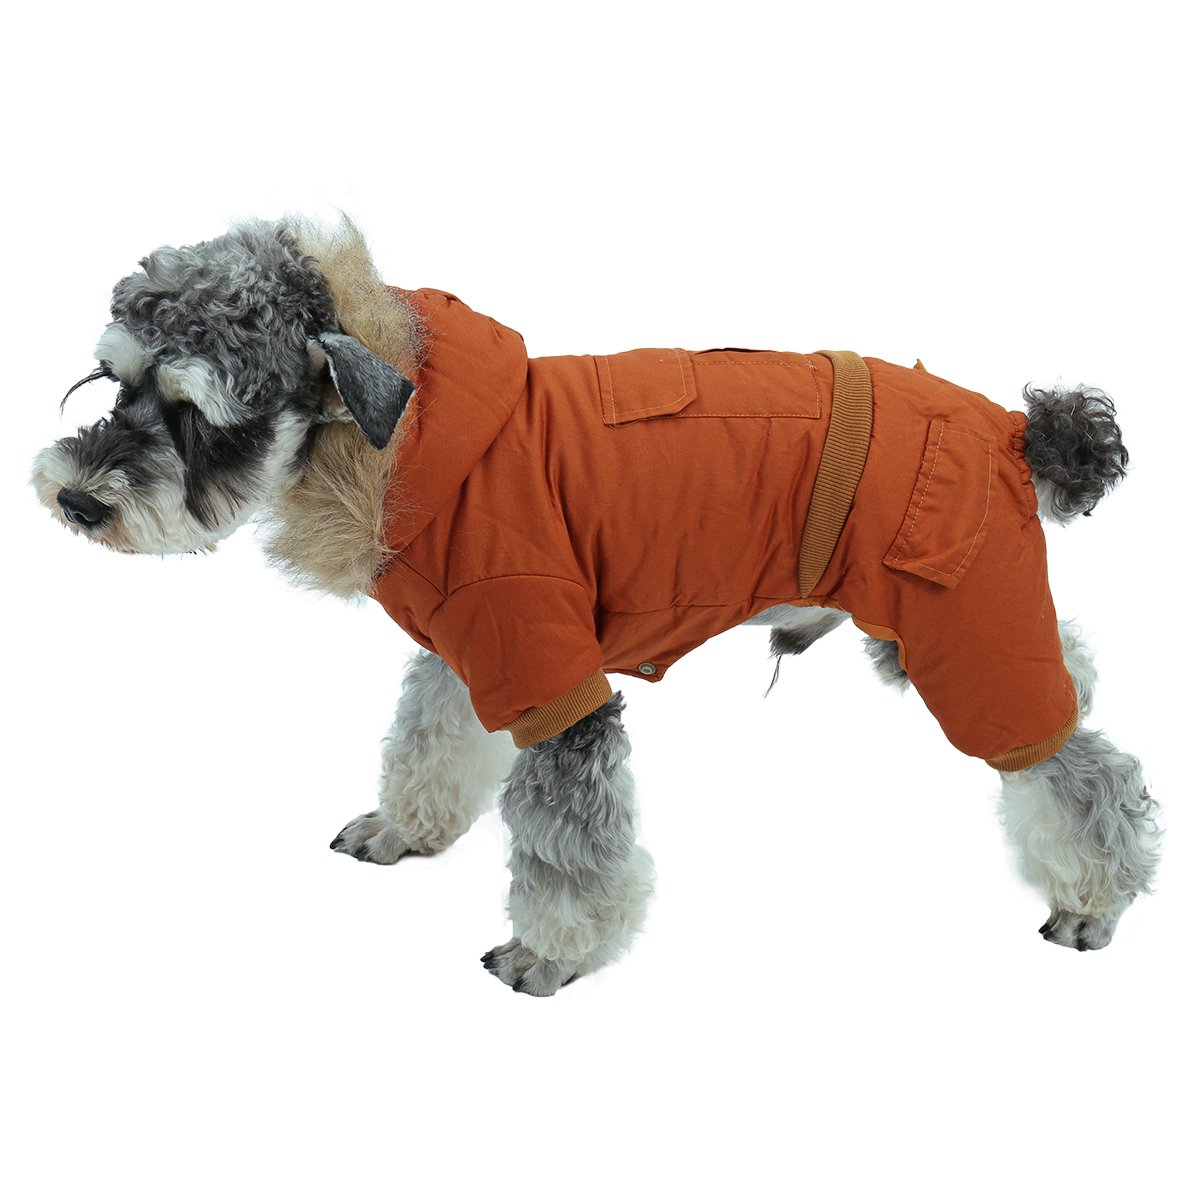 PAWZ Road Pet Clothes Hoodie Dog Winter Coat Warm Jacket Super Warm and Strong Orange S